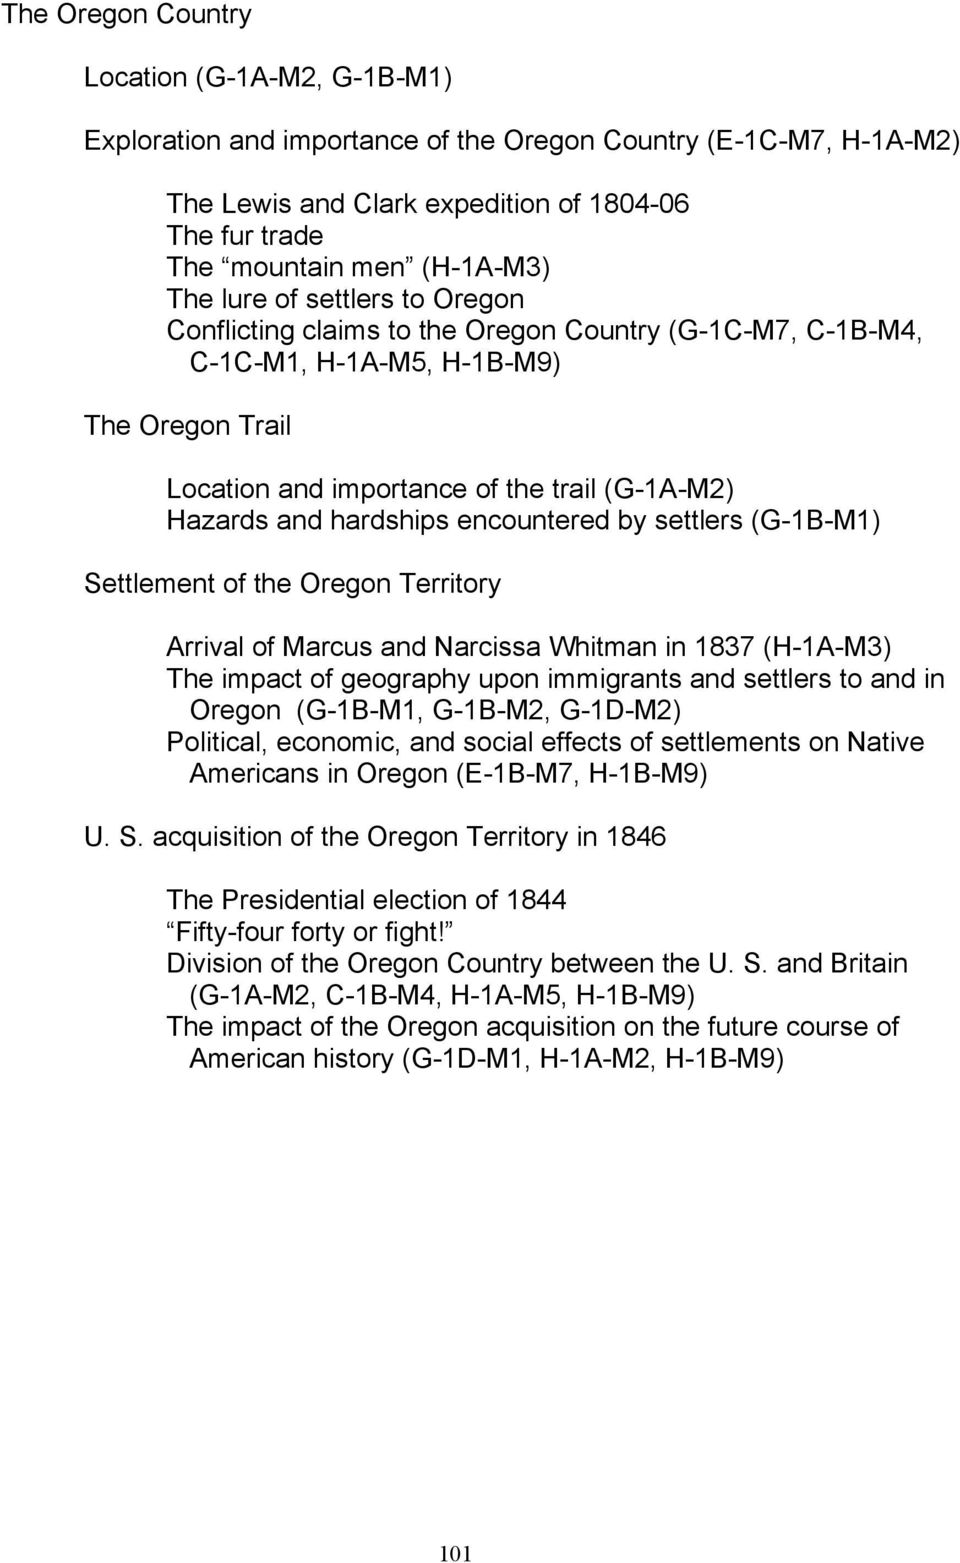 hardships encountered by settlers (G-1B-M1) Settlement of the Oregon Territory Arrival of Marcus and Narcissa Whitman in 1837 (H-1A-M3) The impact of geography upon immigrants and settlers to and in